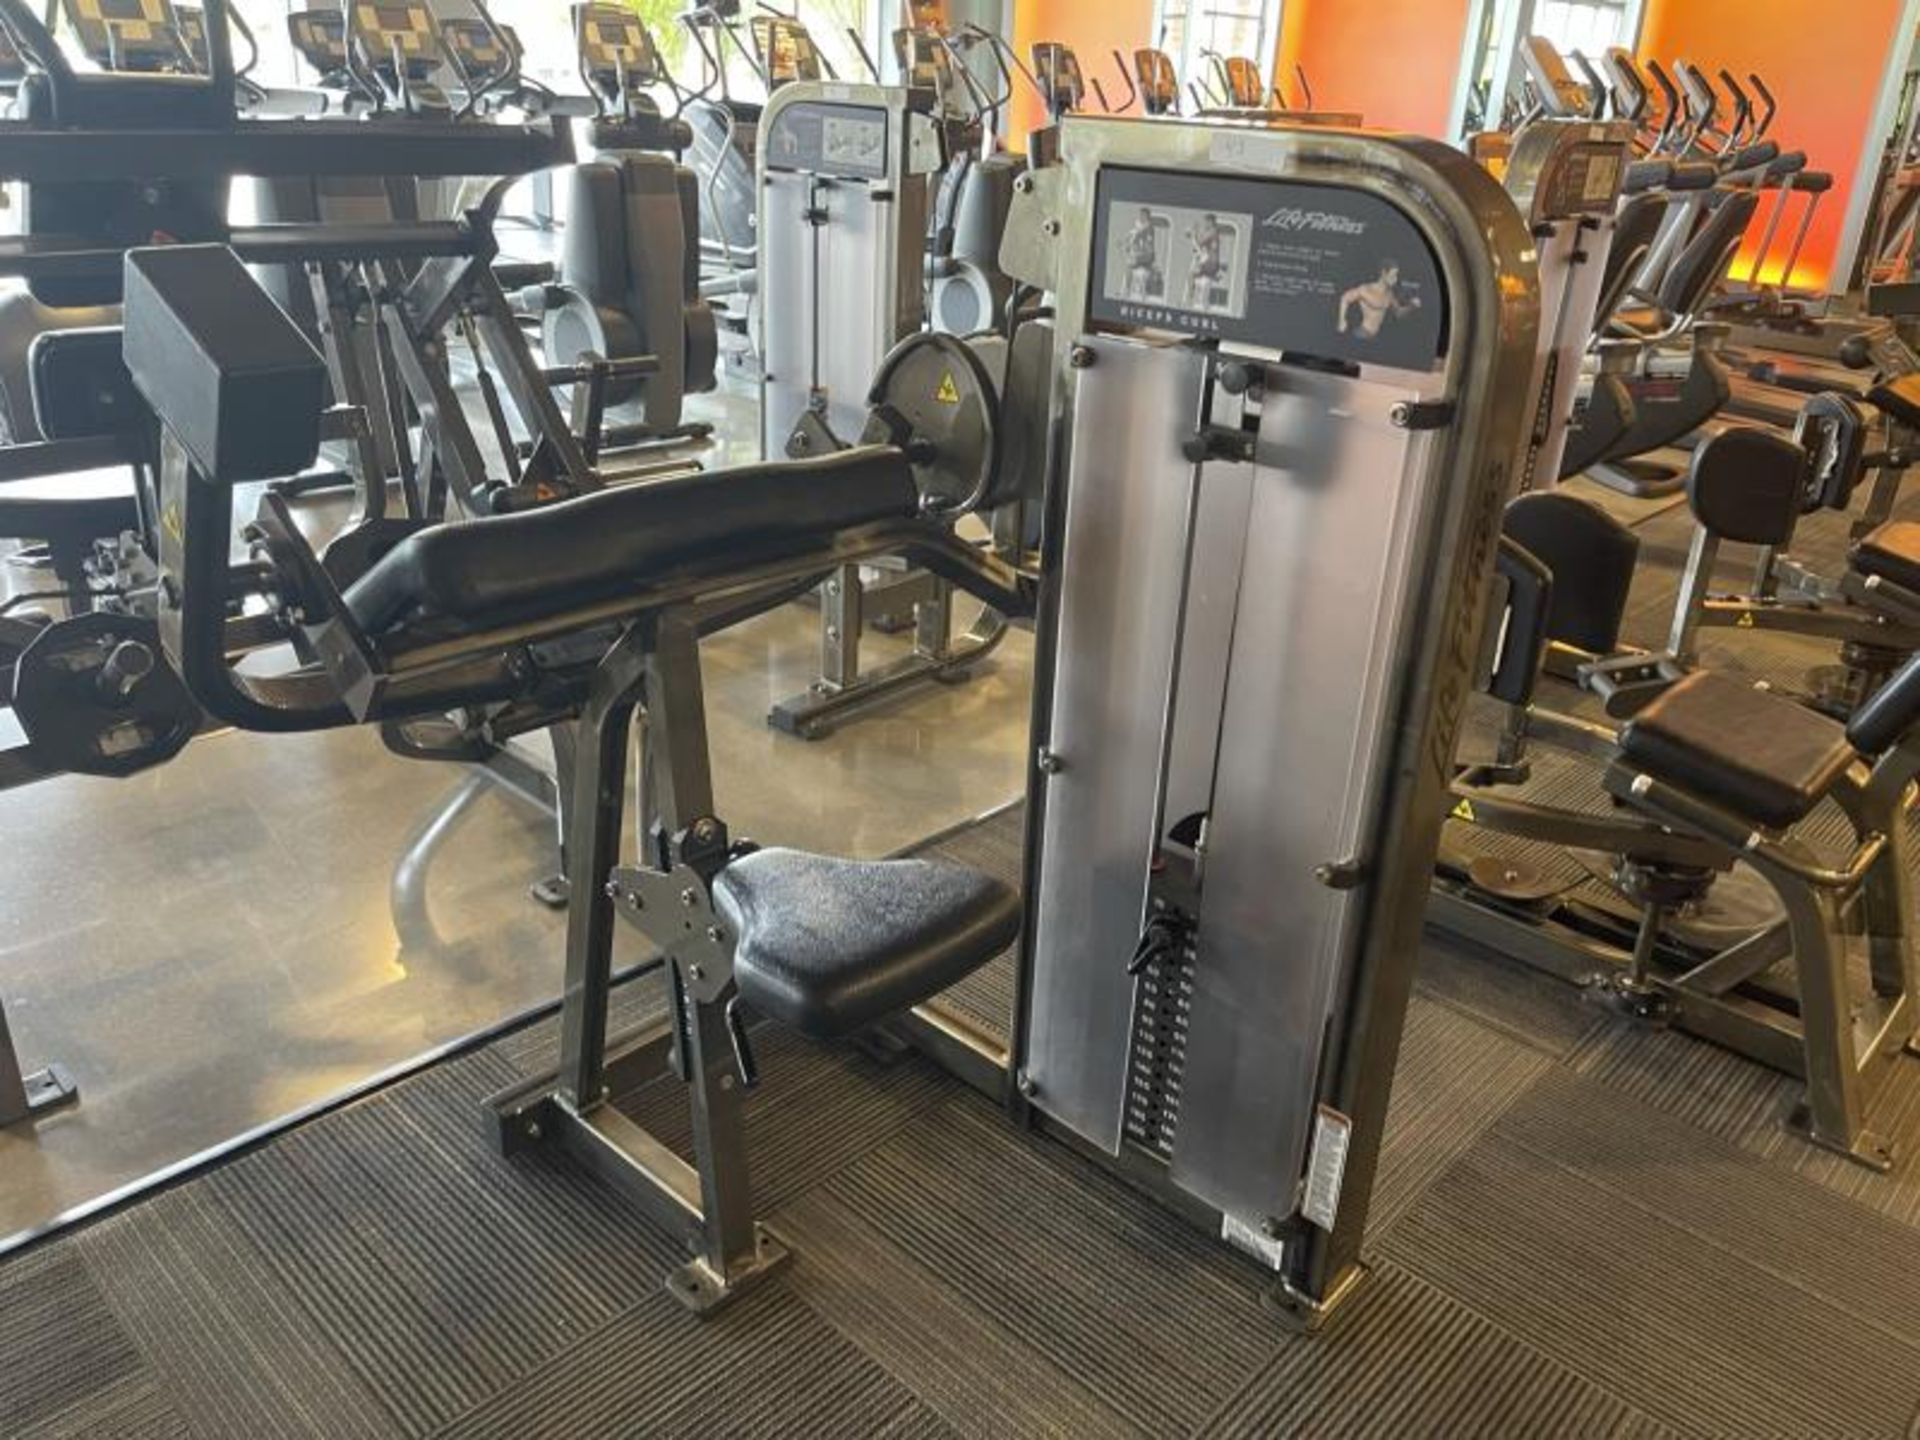 Life Fitness Triceps Extension M: PSBCSE